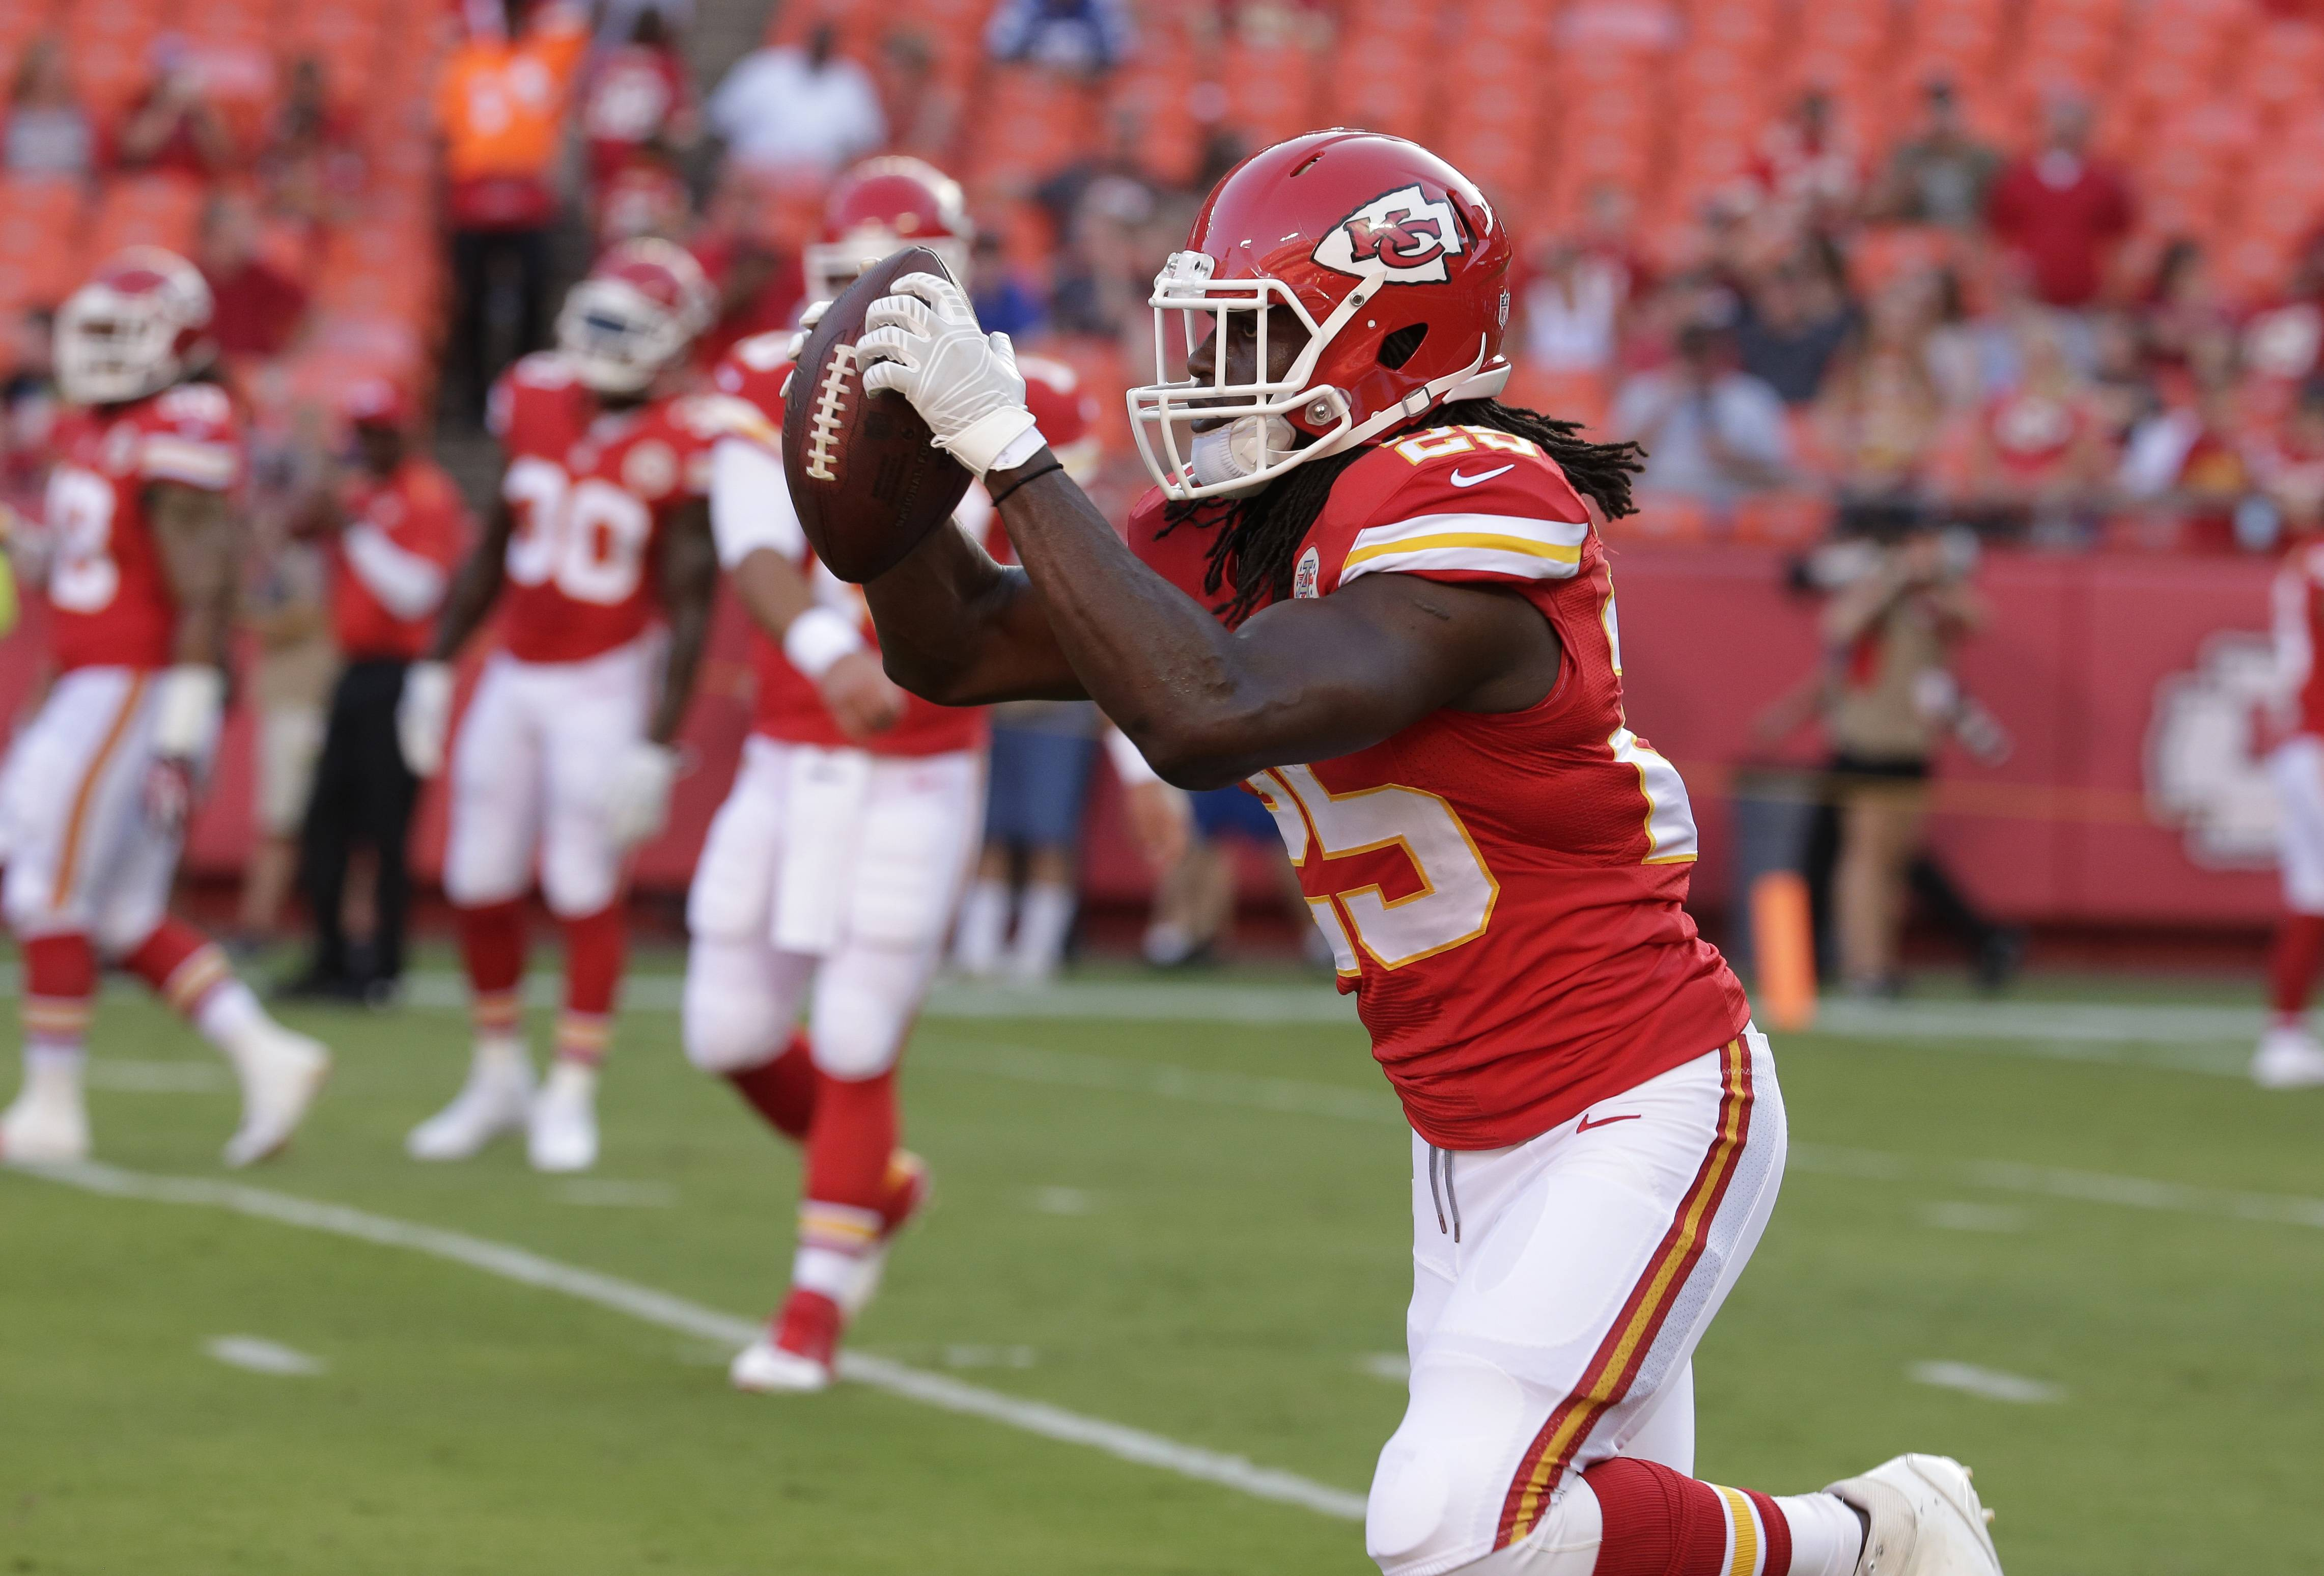 Jamaal Charles will try to become the first RB since LaDainian Tomlinson in 2006-07 to score the most fantasy points in back-to-back seasons.